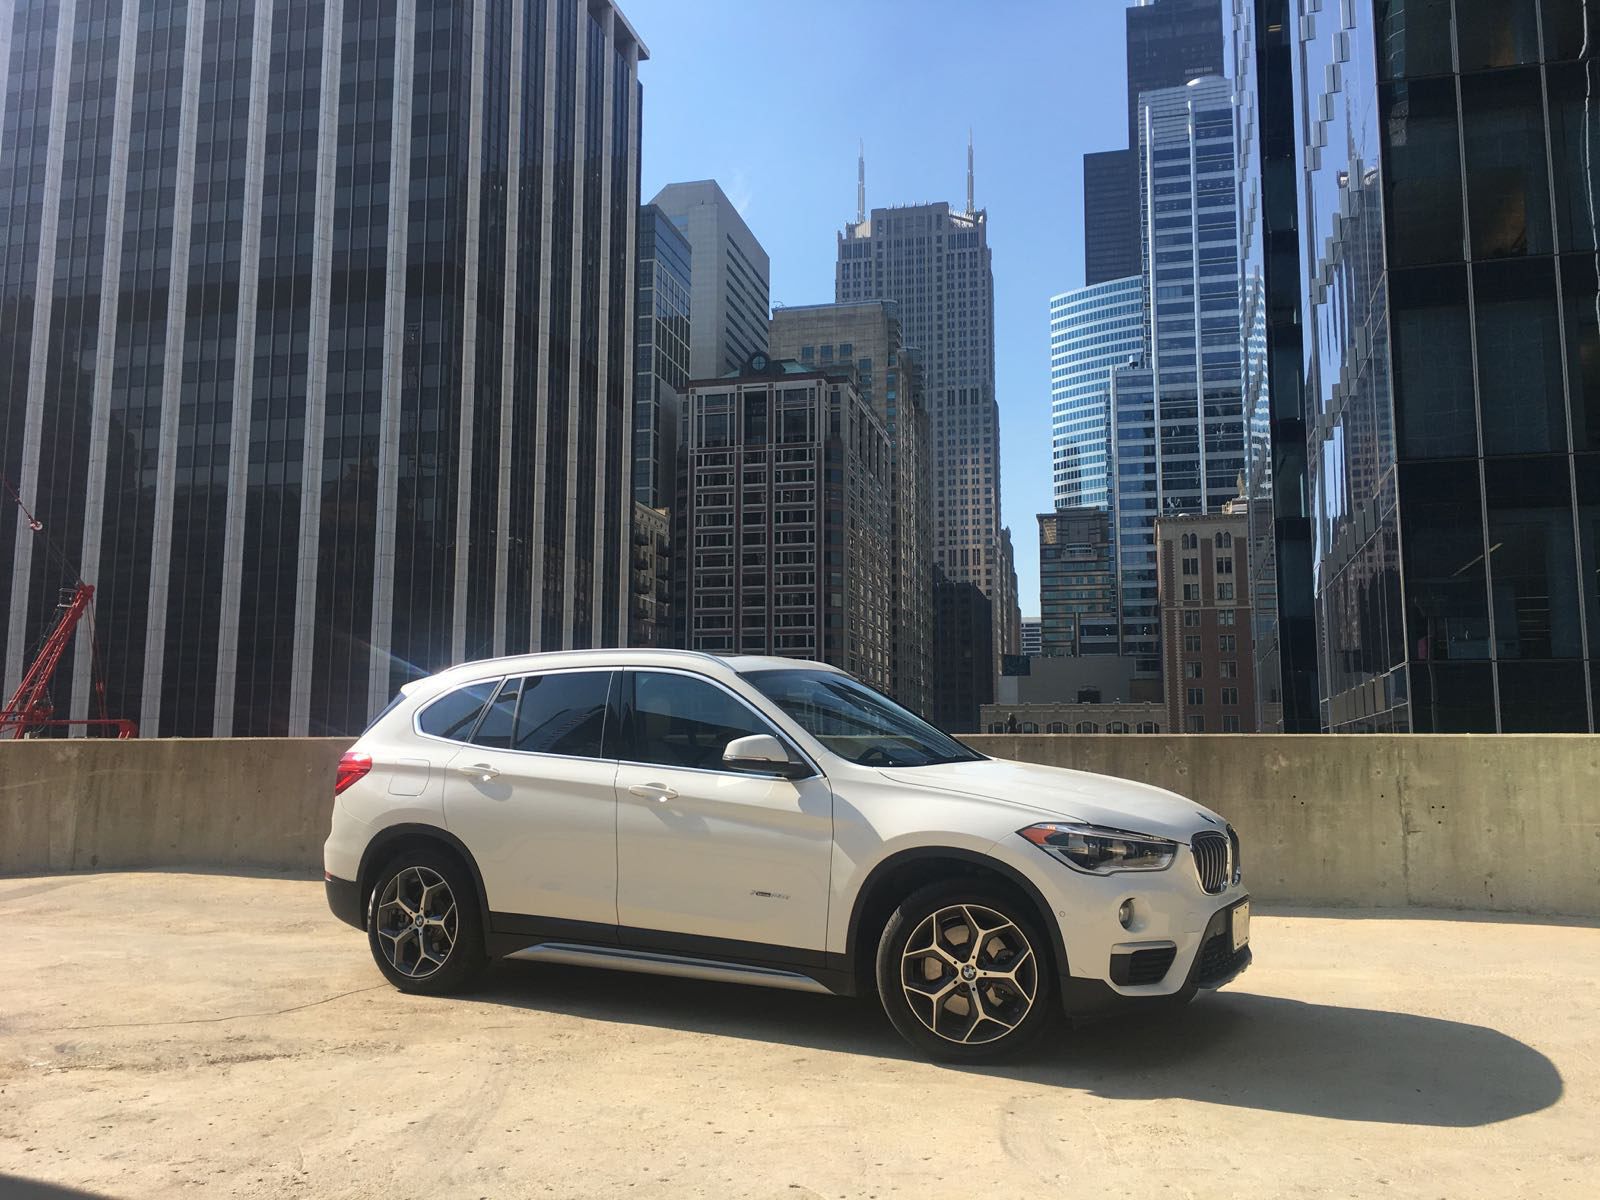 The X1 Does Take Advantage Of Its Front Wheel Drive Roots Compared With Previous Version Both Shorter And Taller Allowing For Better Visibility